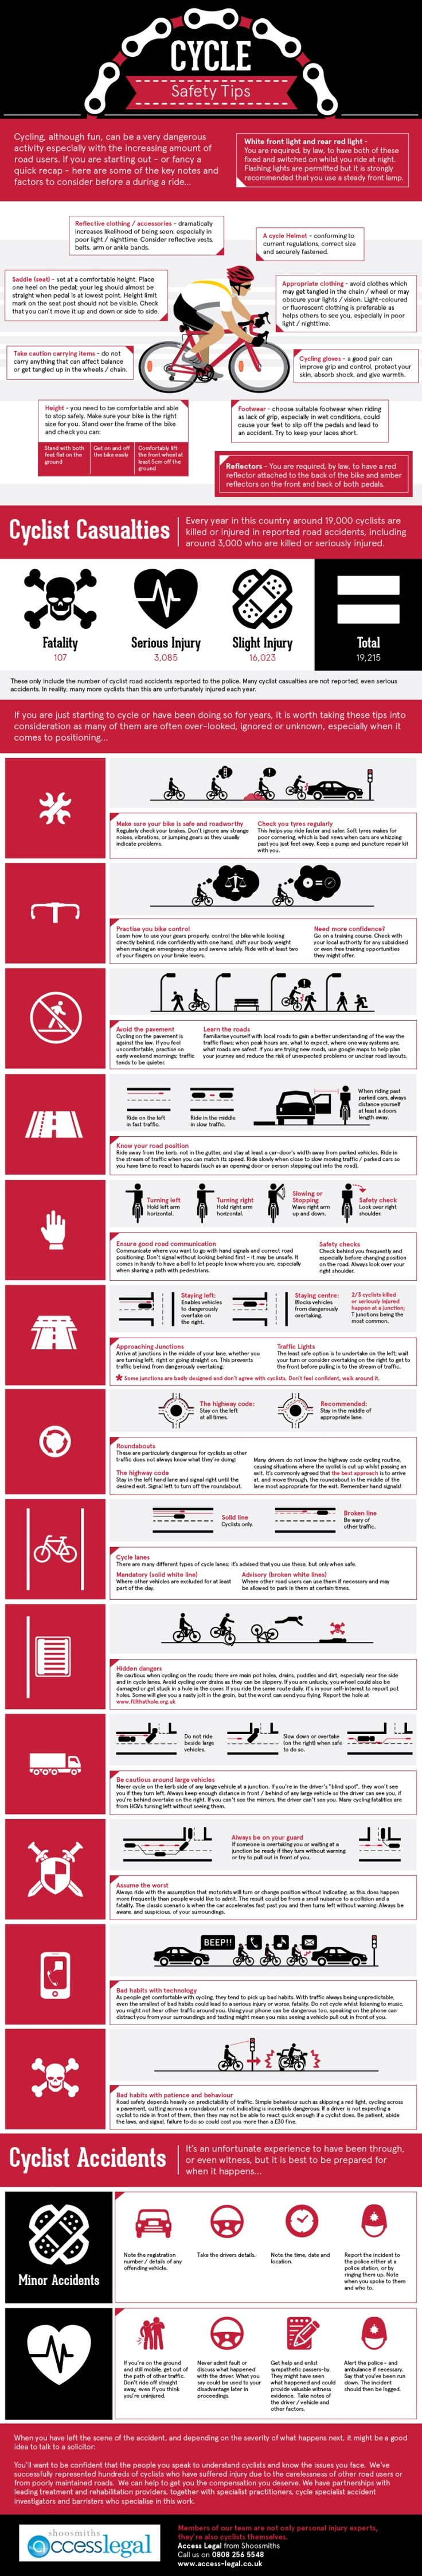 Check out our cycle safety tips infographic for a recap of the do's and don'ts of cycling because, although more often than not the cyclist is the 'innocent victim' in any accident there are things you can do make sure you're safe on two wheels.      Read more: http://www.access-legal.co.uk/legal-news/Infographic-Cycle-safety-tips-4887.htm